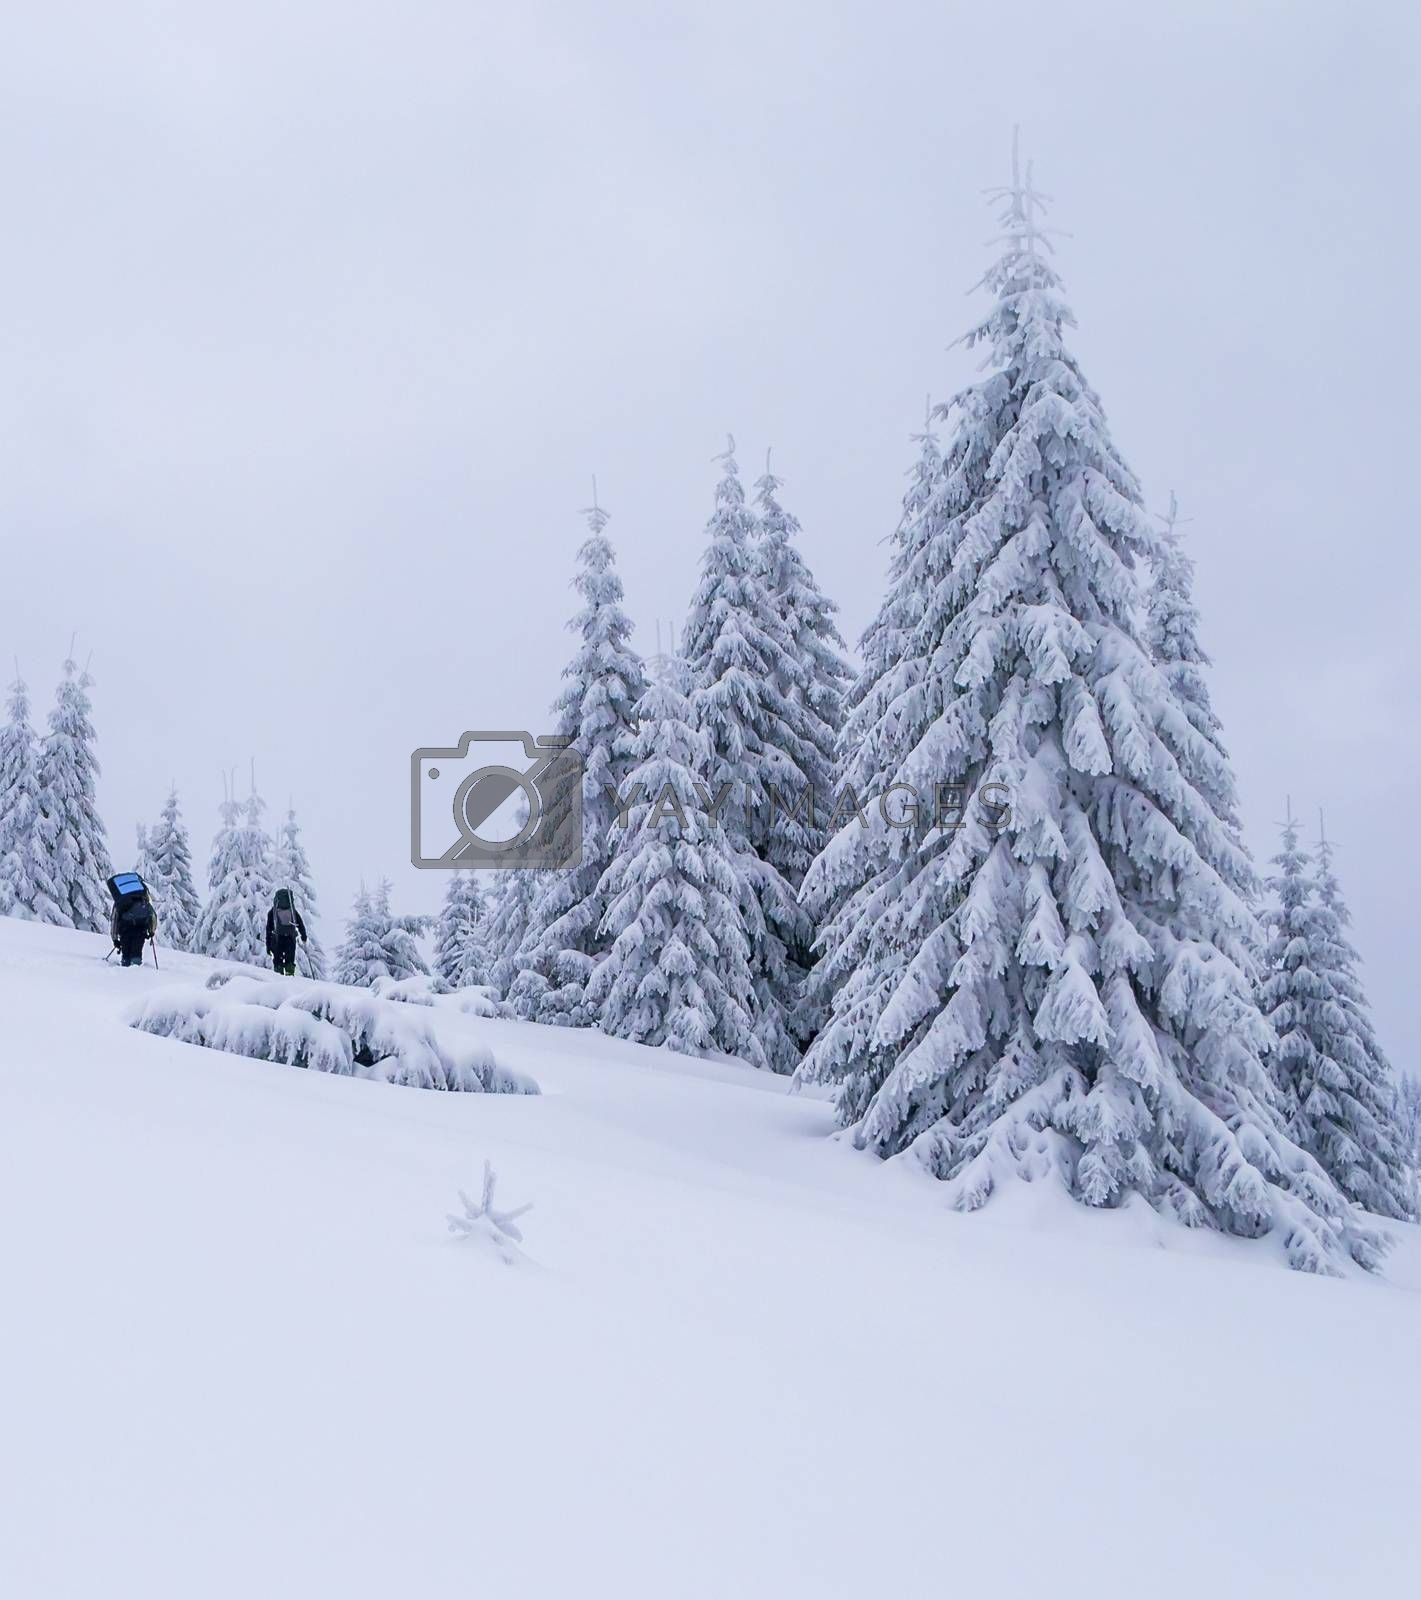 Two tourists hikes on snow. Bad weather. Large snow covered spruce trees near them. Winter